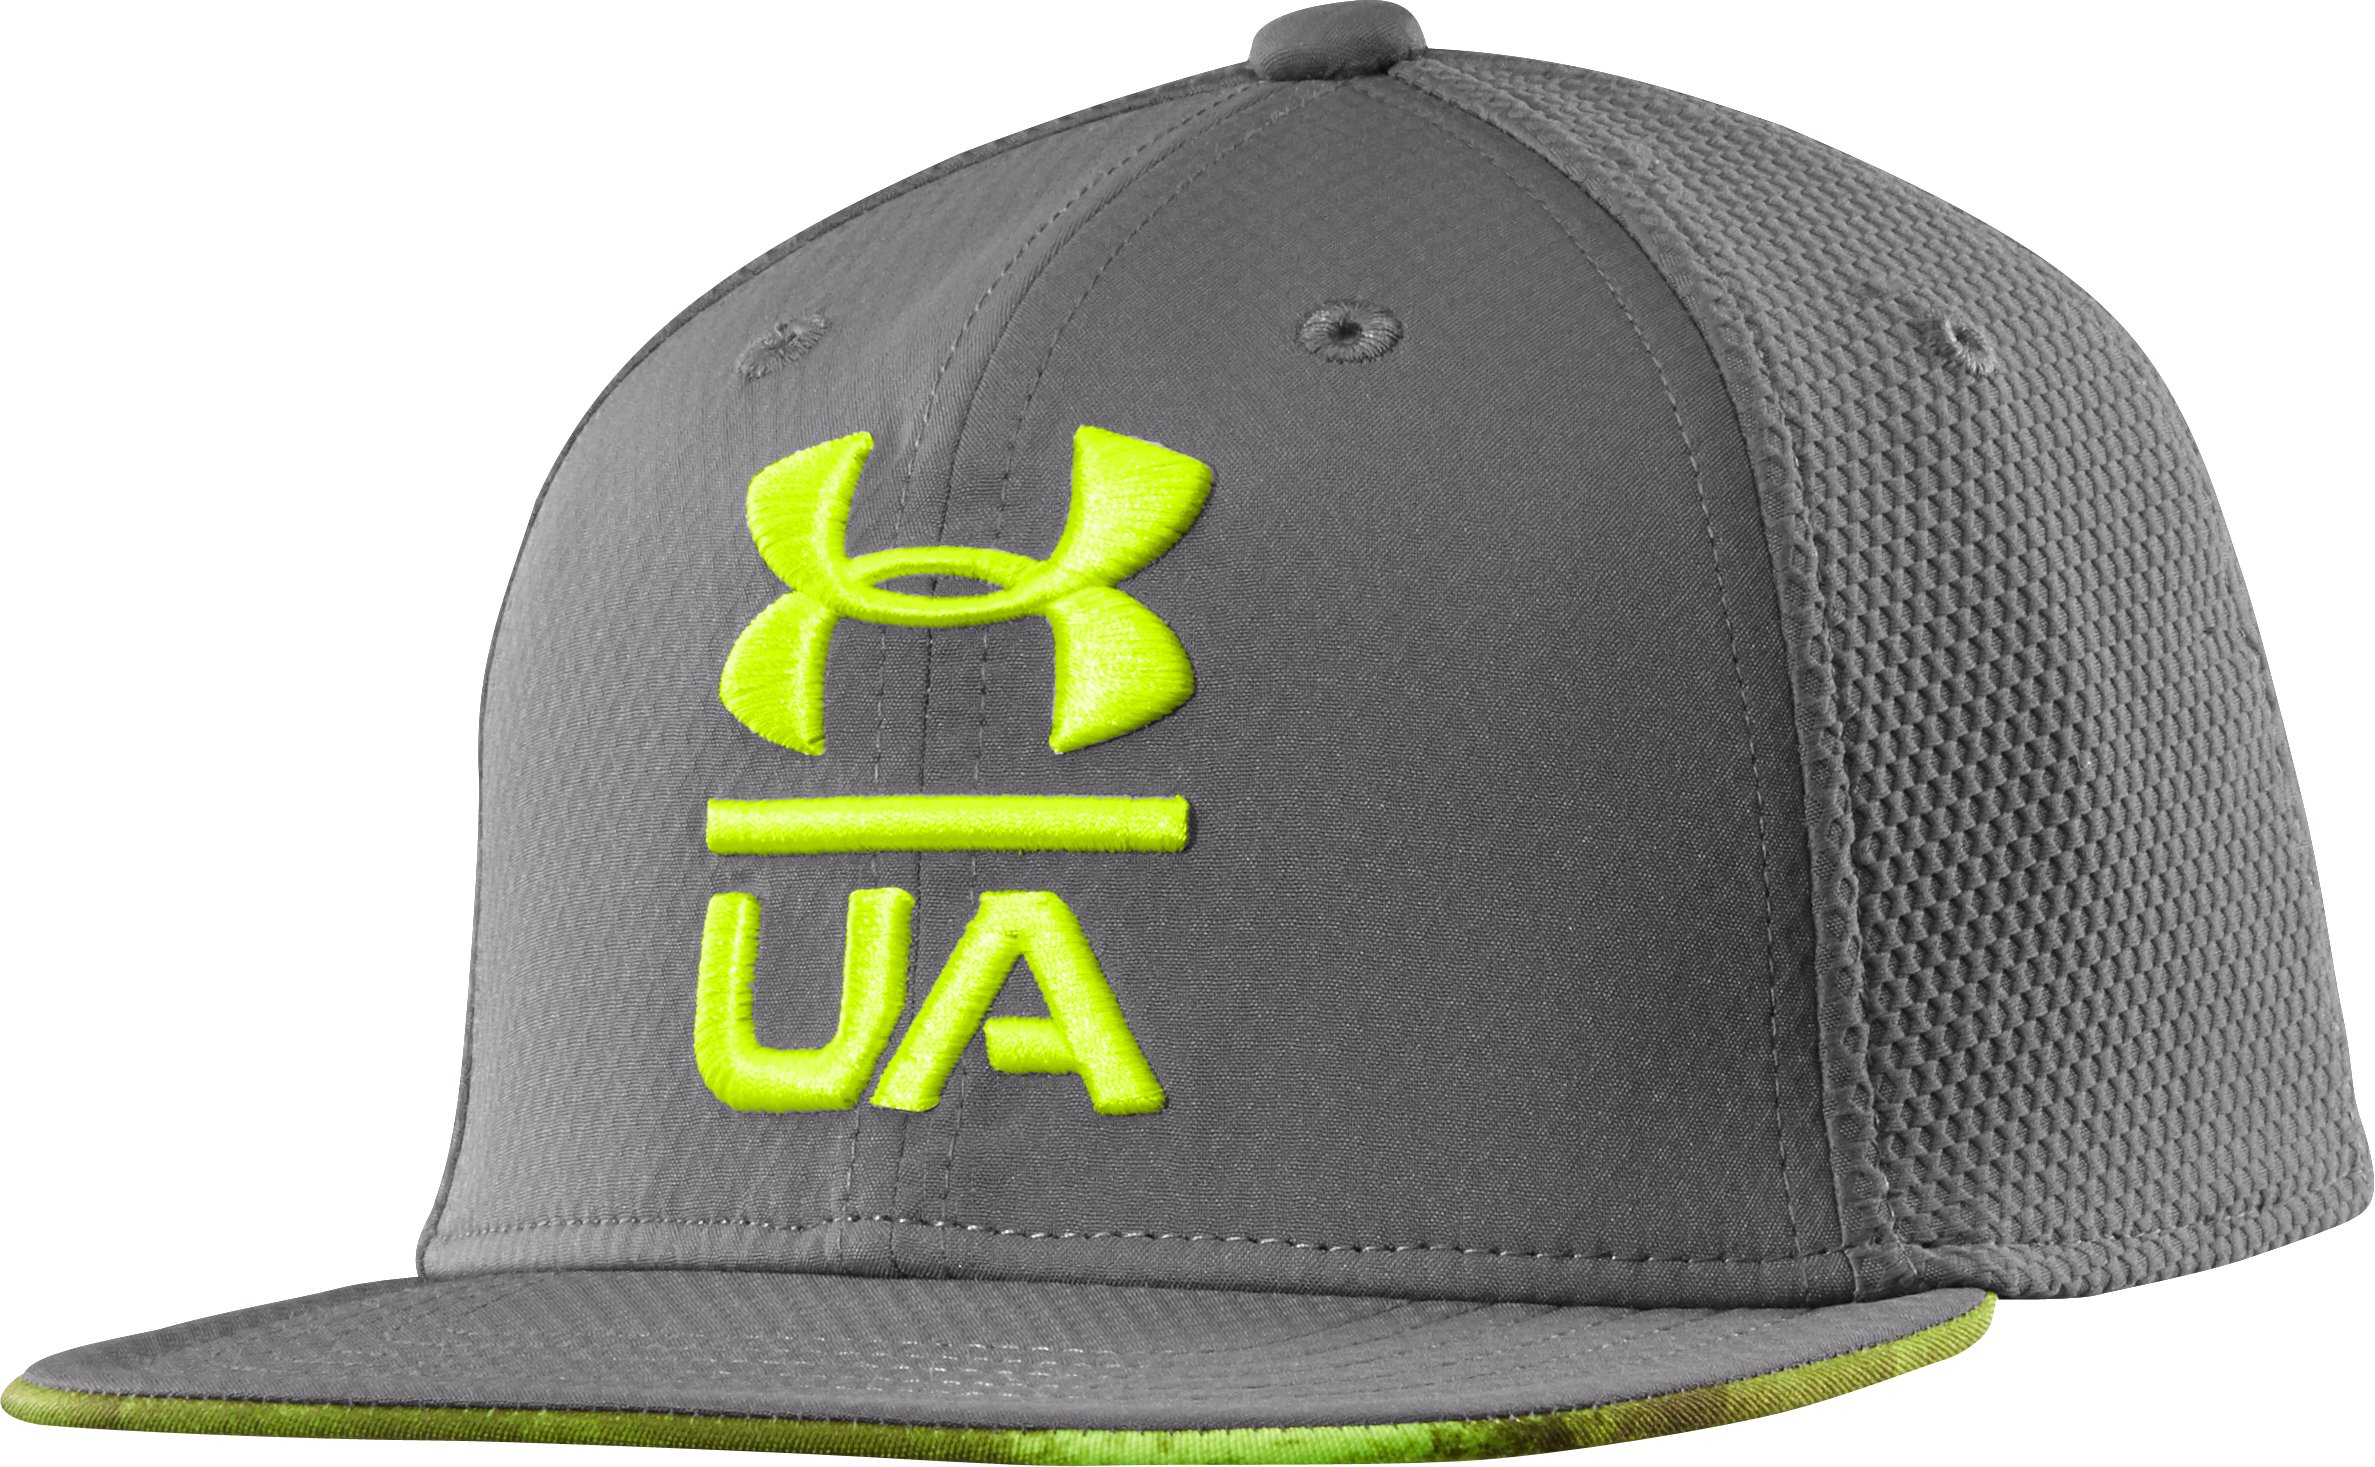 Boys' UA Eyes Up Flat Brim Stretch Fit Cap, Graphite, zoomed image